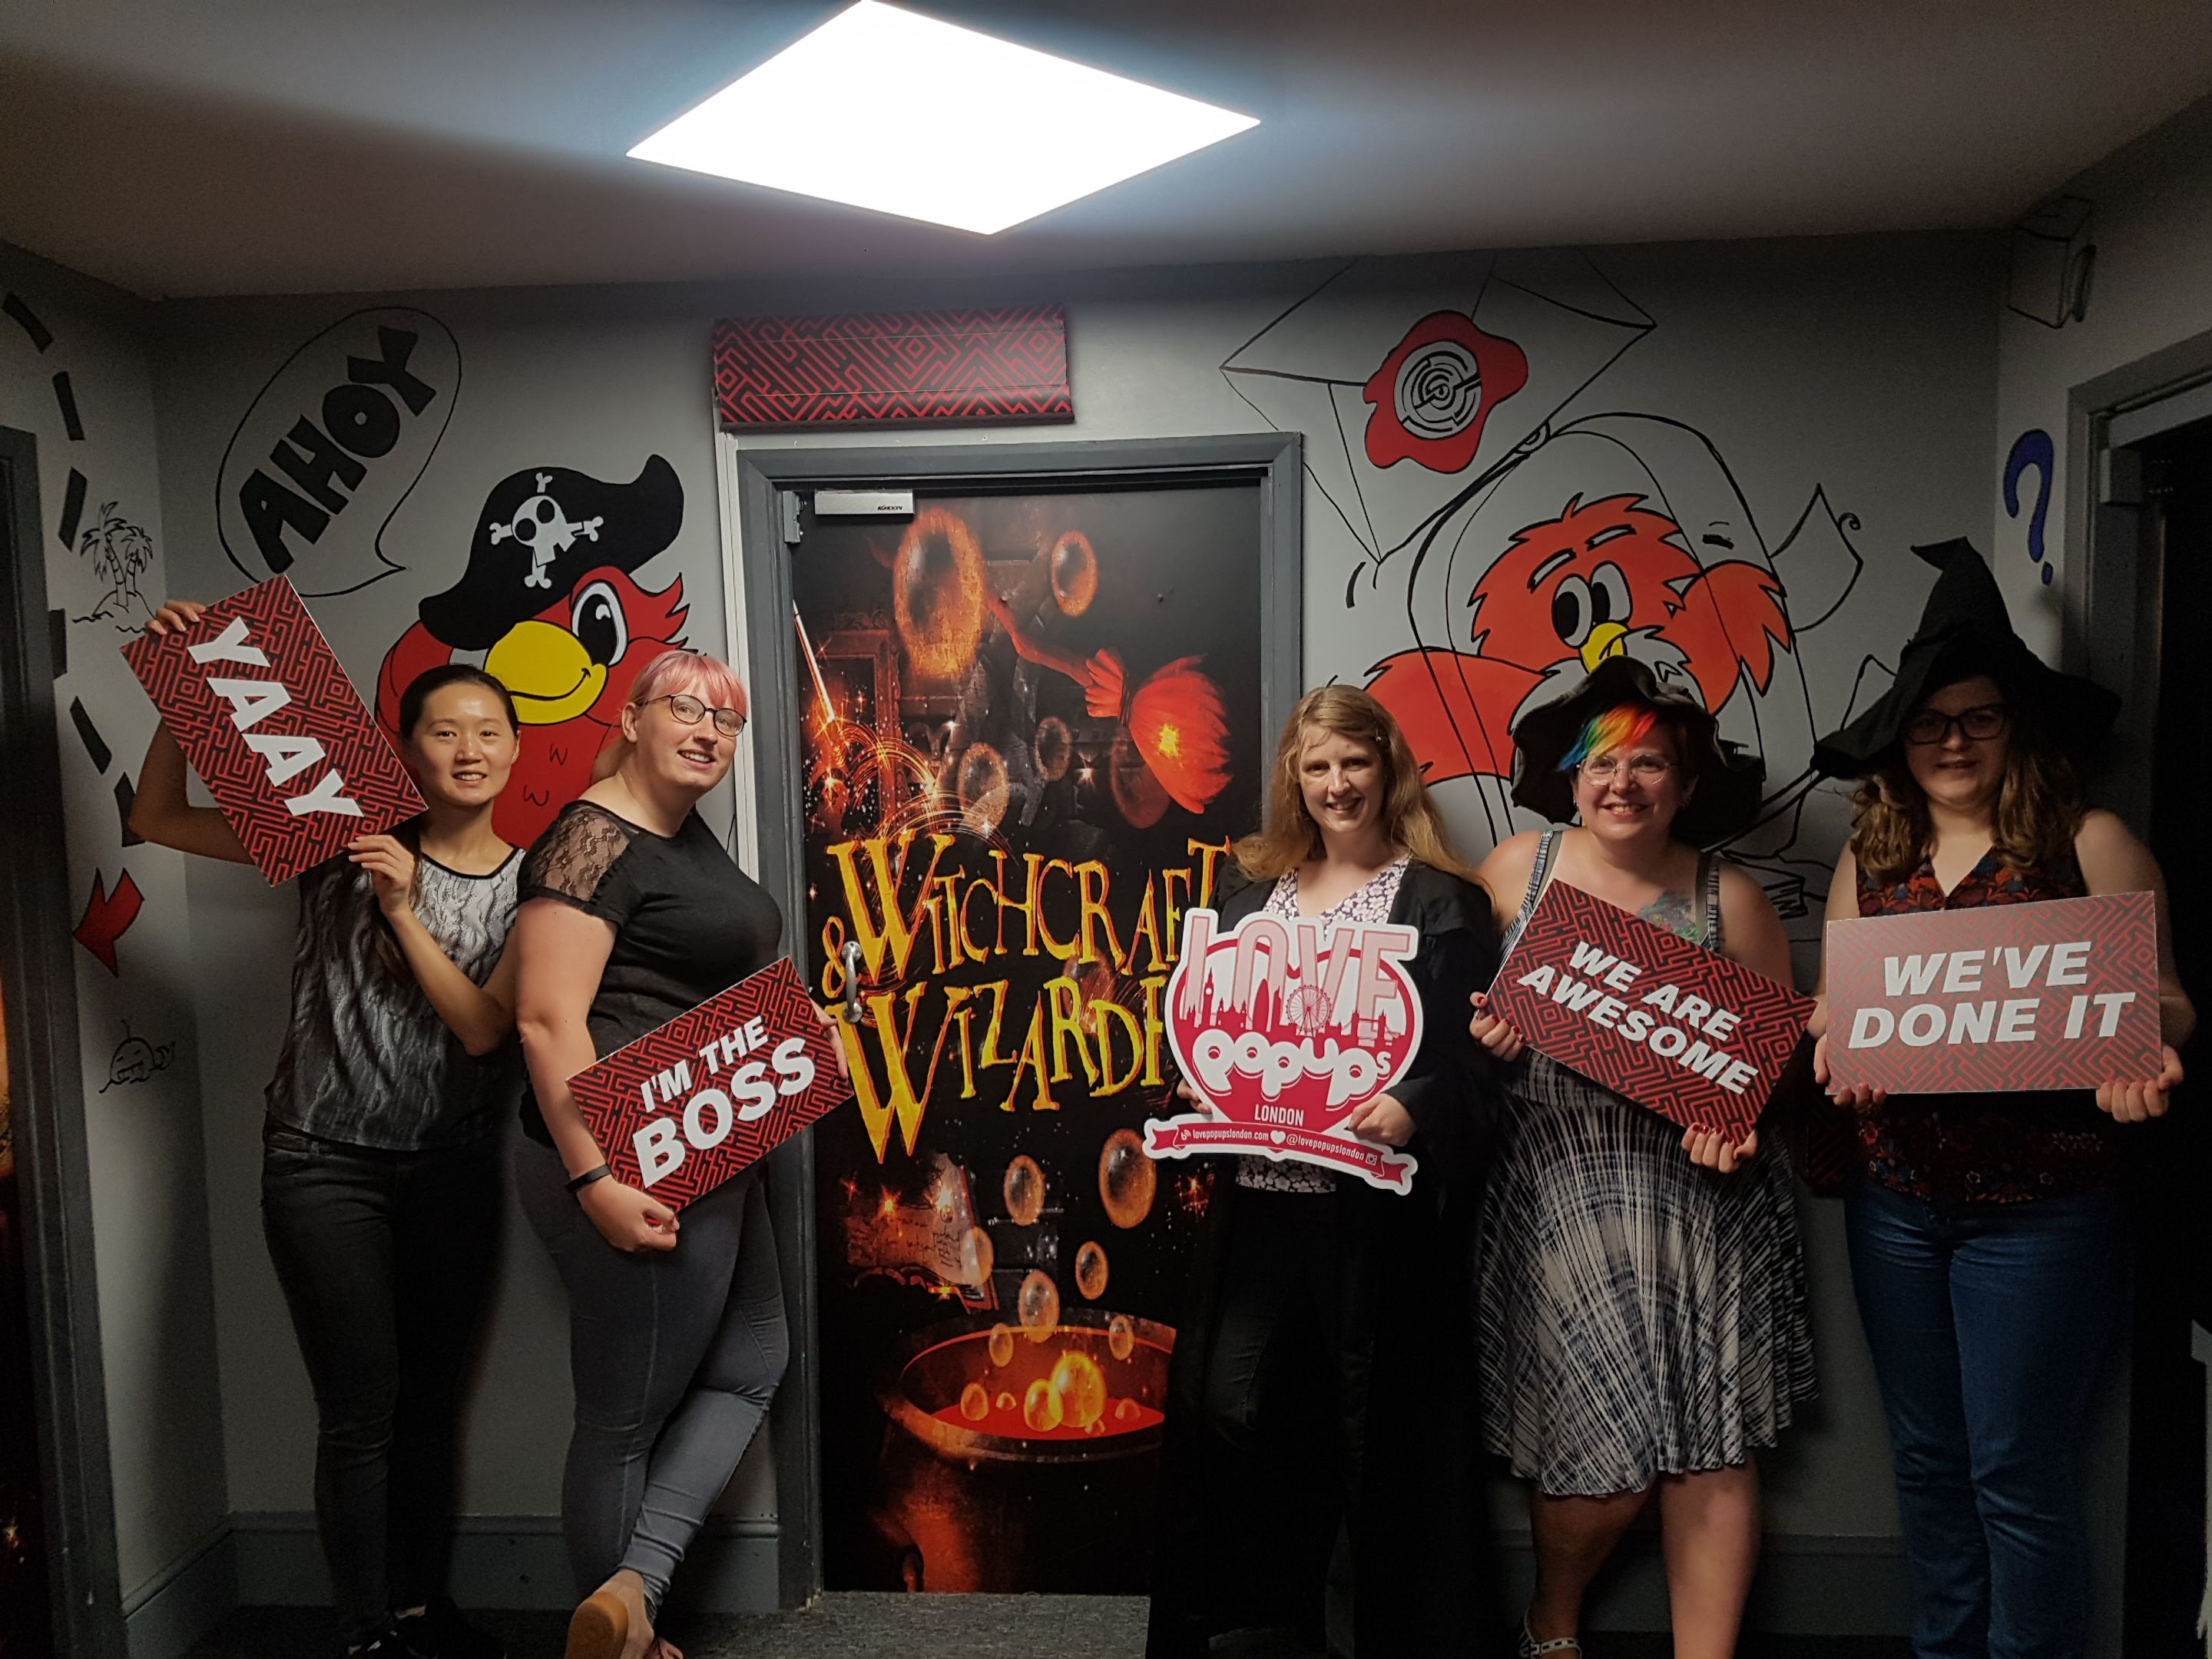 we beat the witchcraft and wizardry escape room